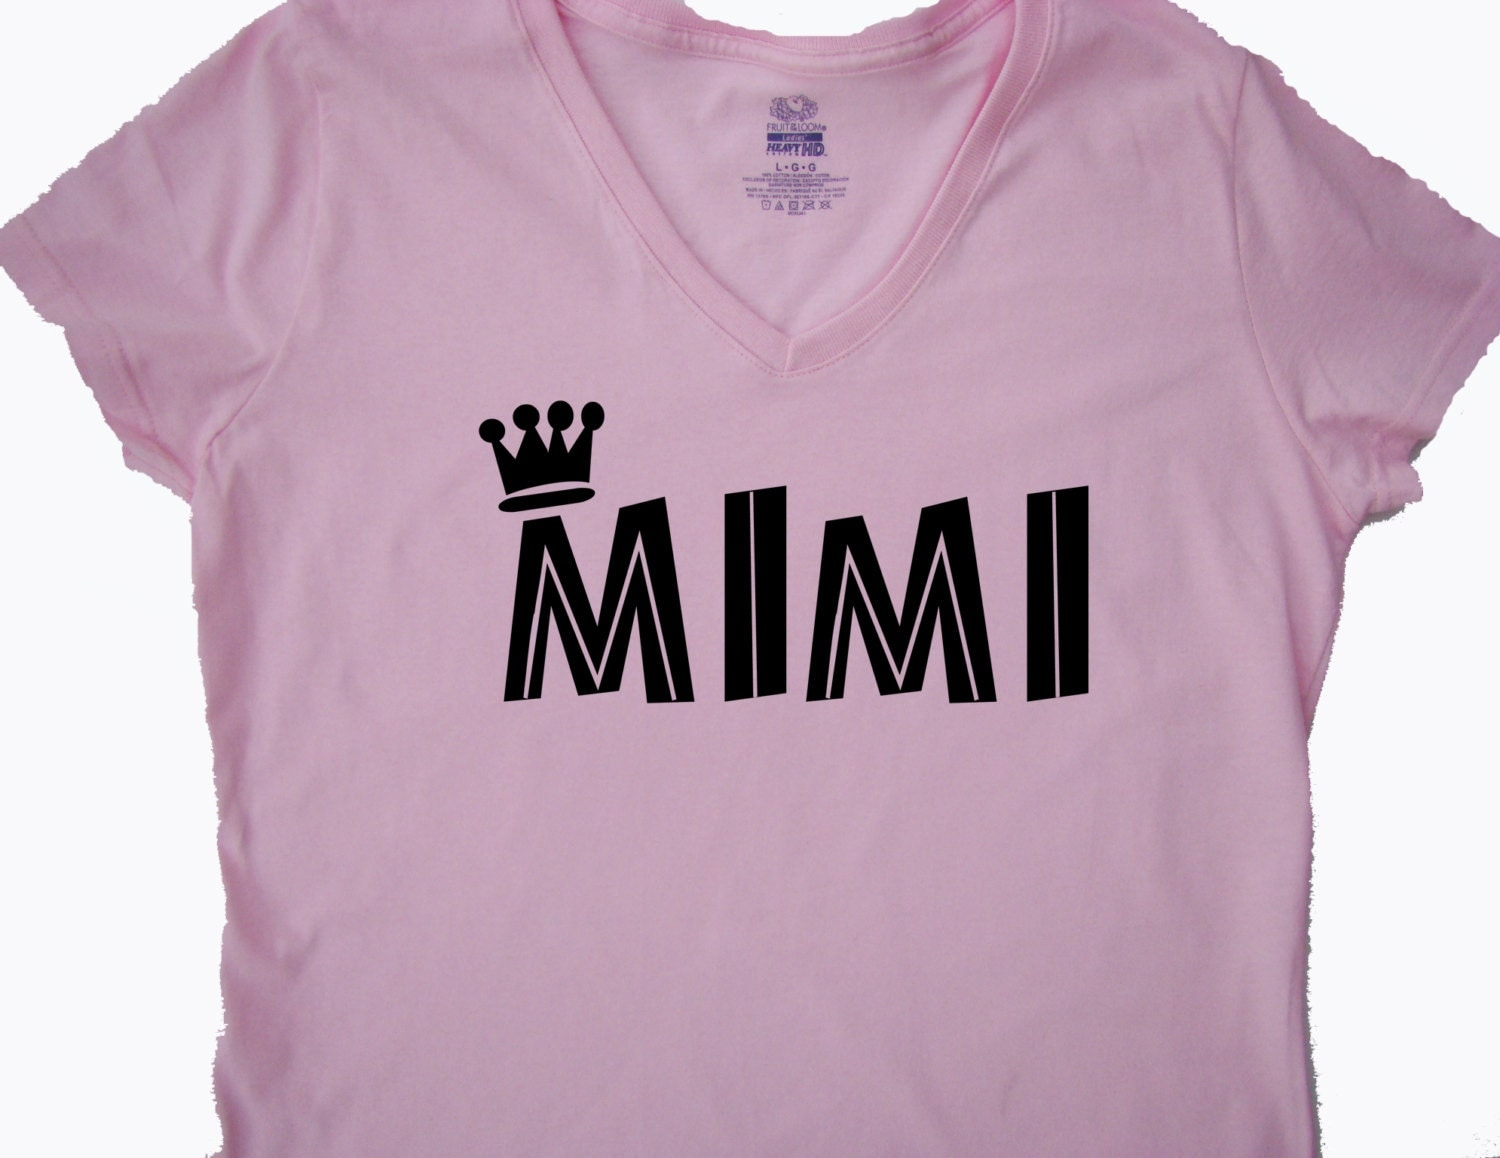 Mimi shirt tops and tees mimi mother 39 s day gift new for Custom youth t shirts no minimum